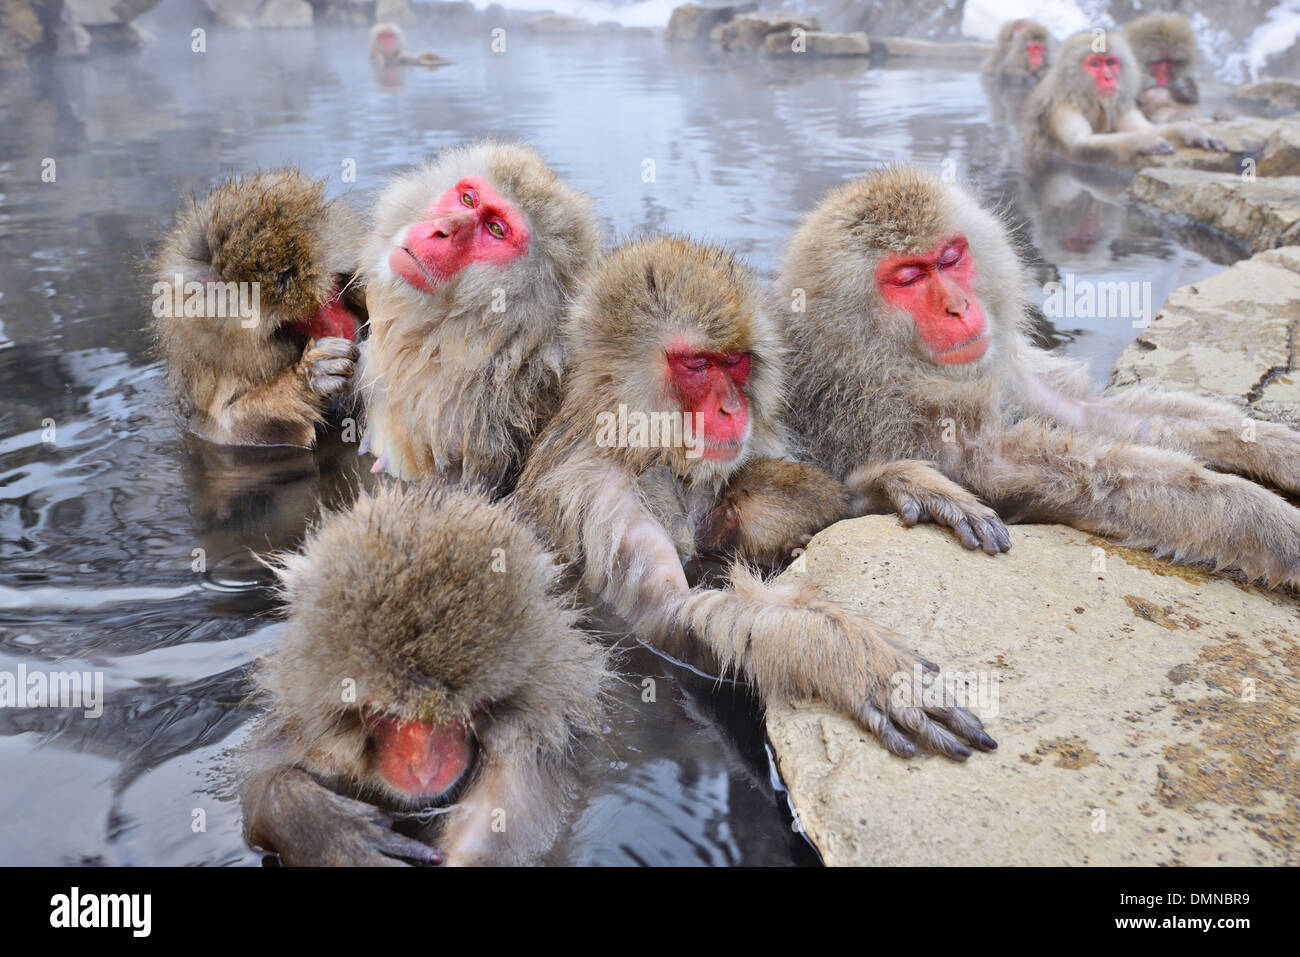 Macaques bath in hot springs in Nagano, Japan. Stock Photo